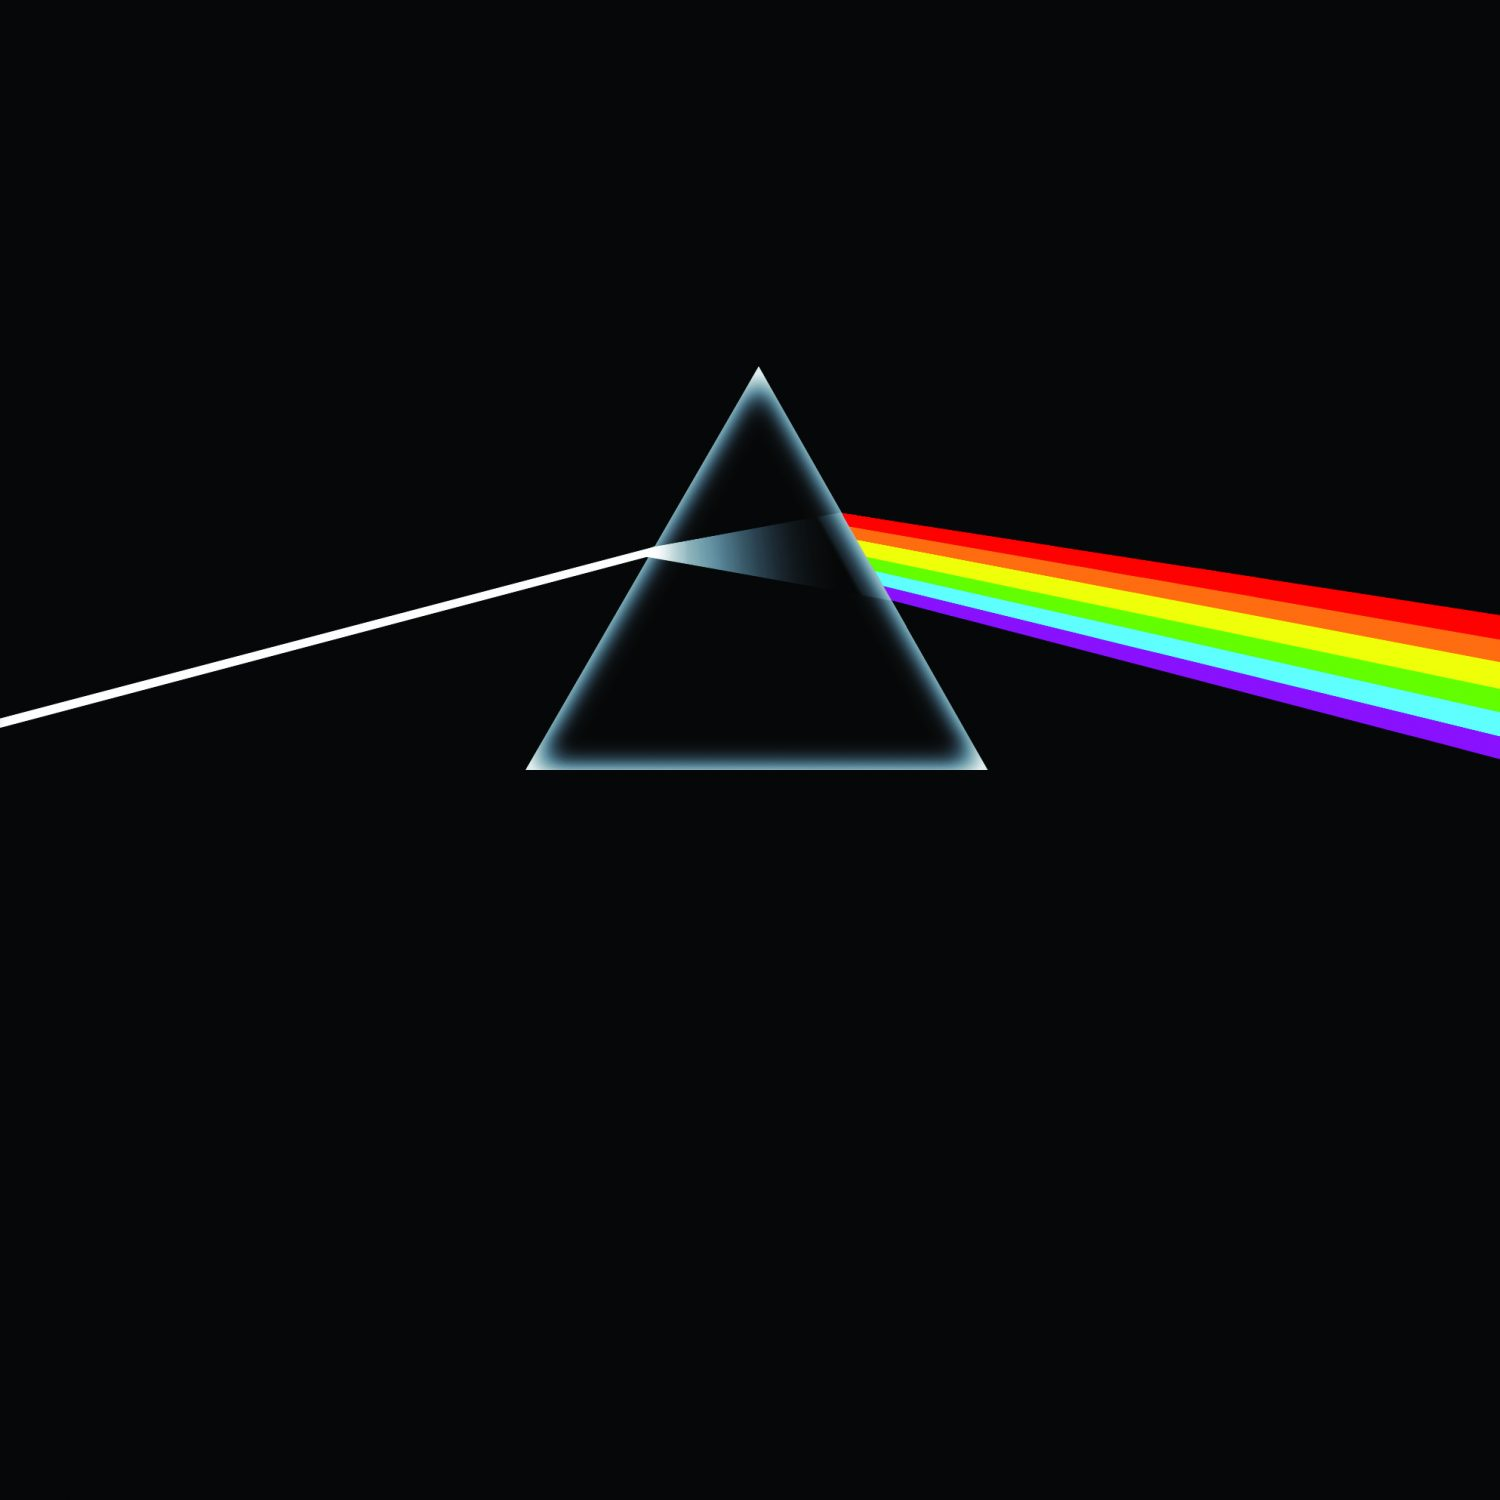 Full Albums: Pink Floyd's 'The Dark Side of the Moon'